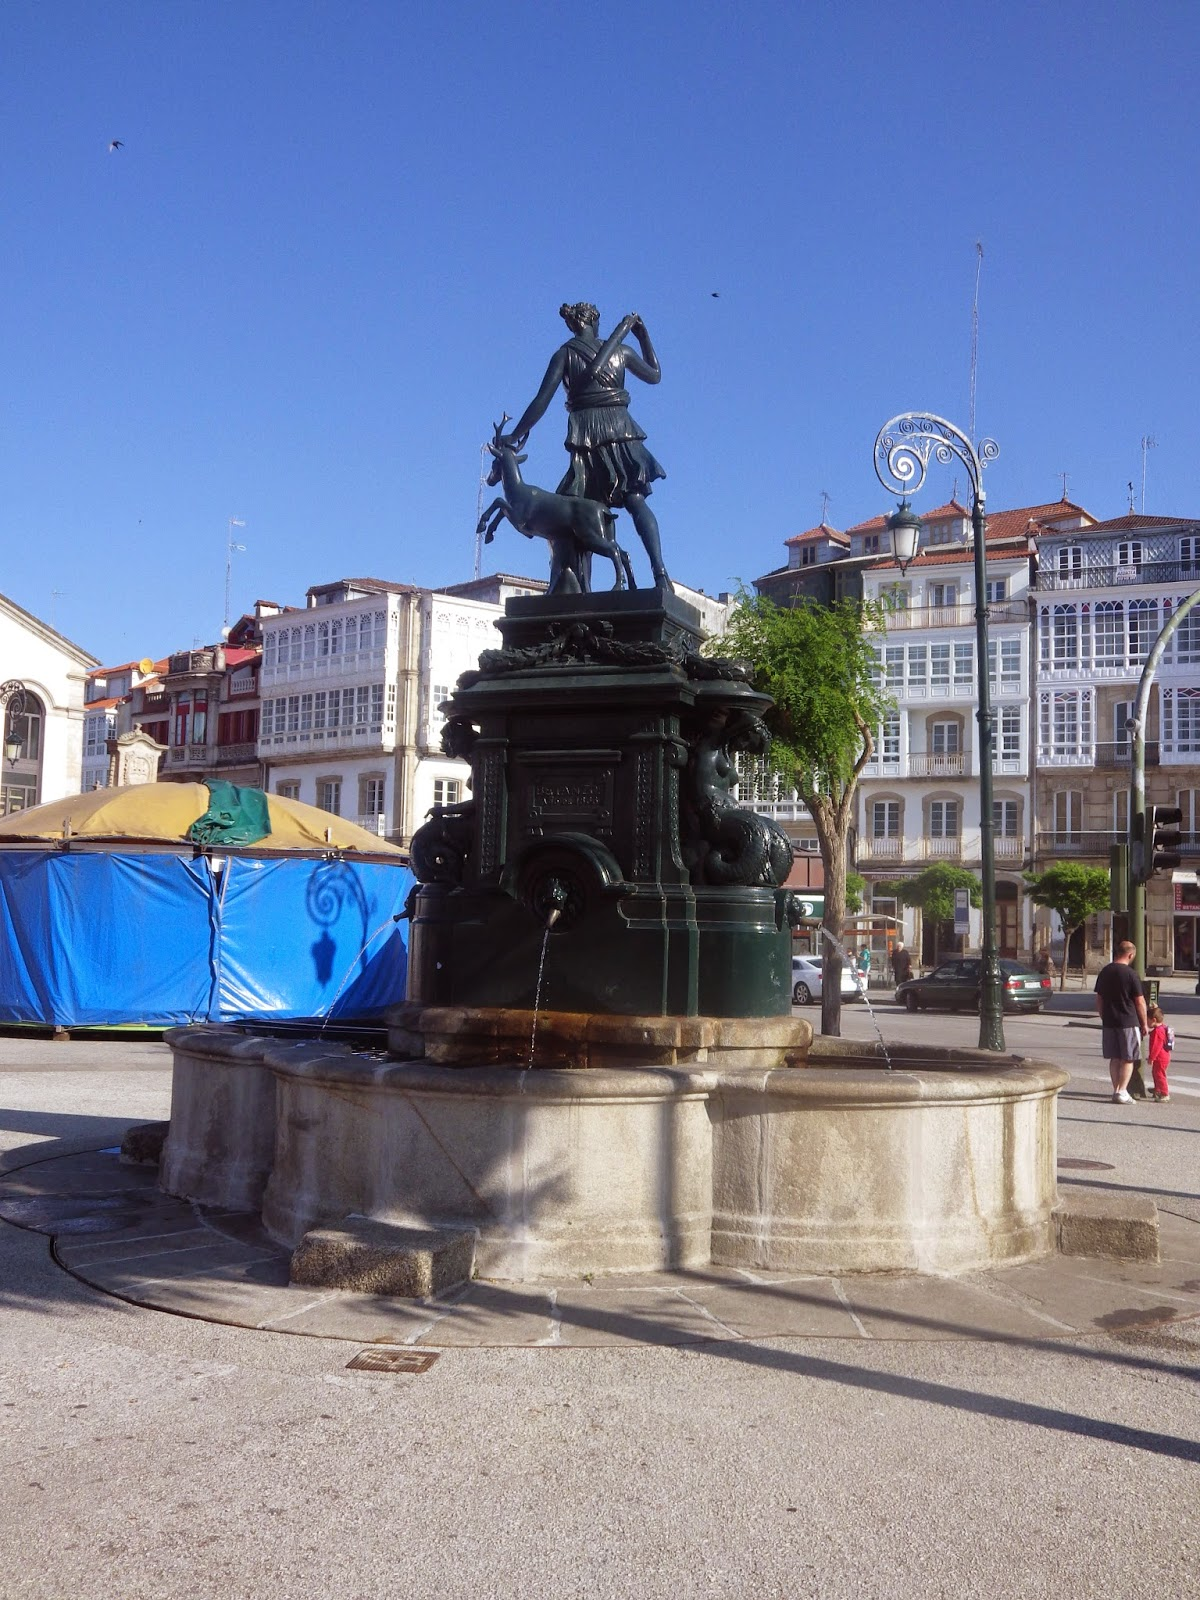 Diana's fountain in Betantoz, Northern Spain